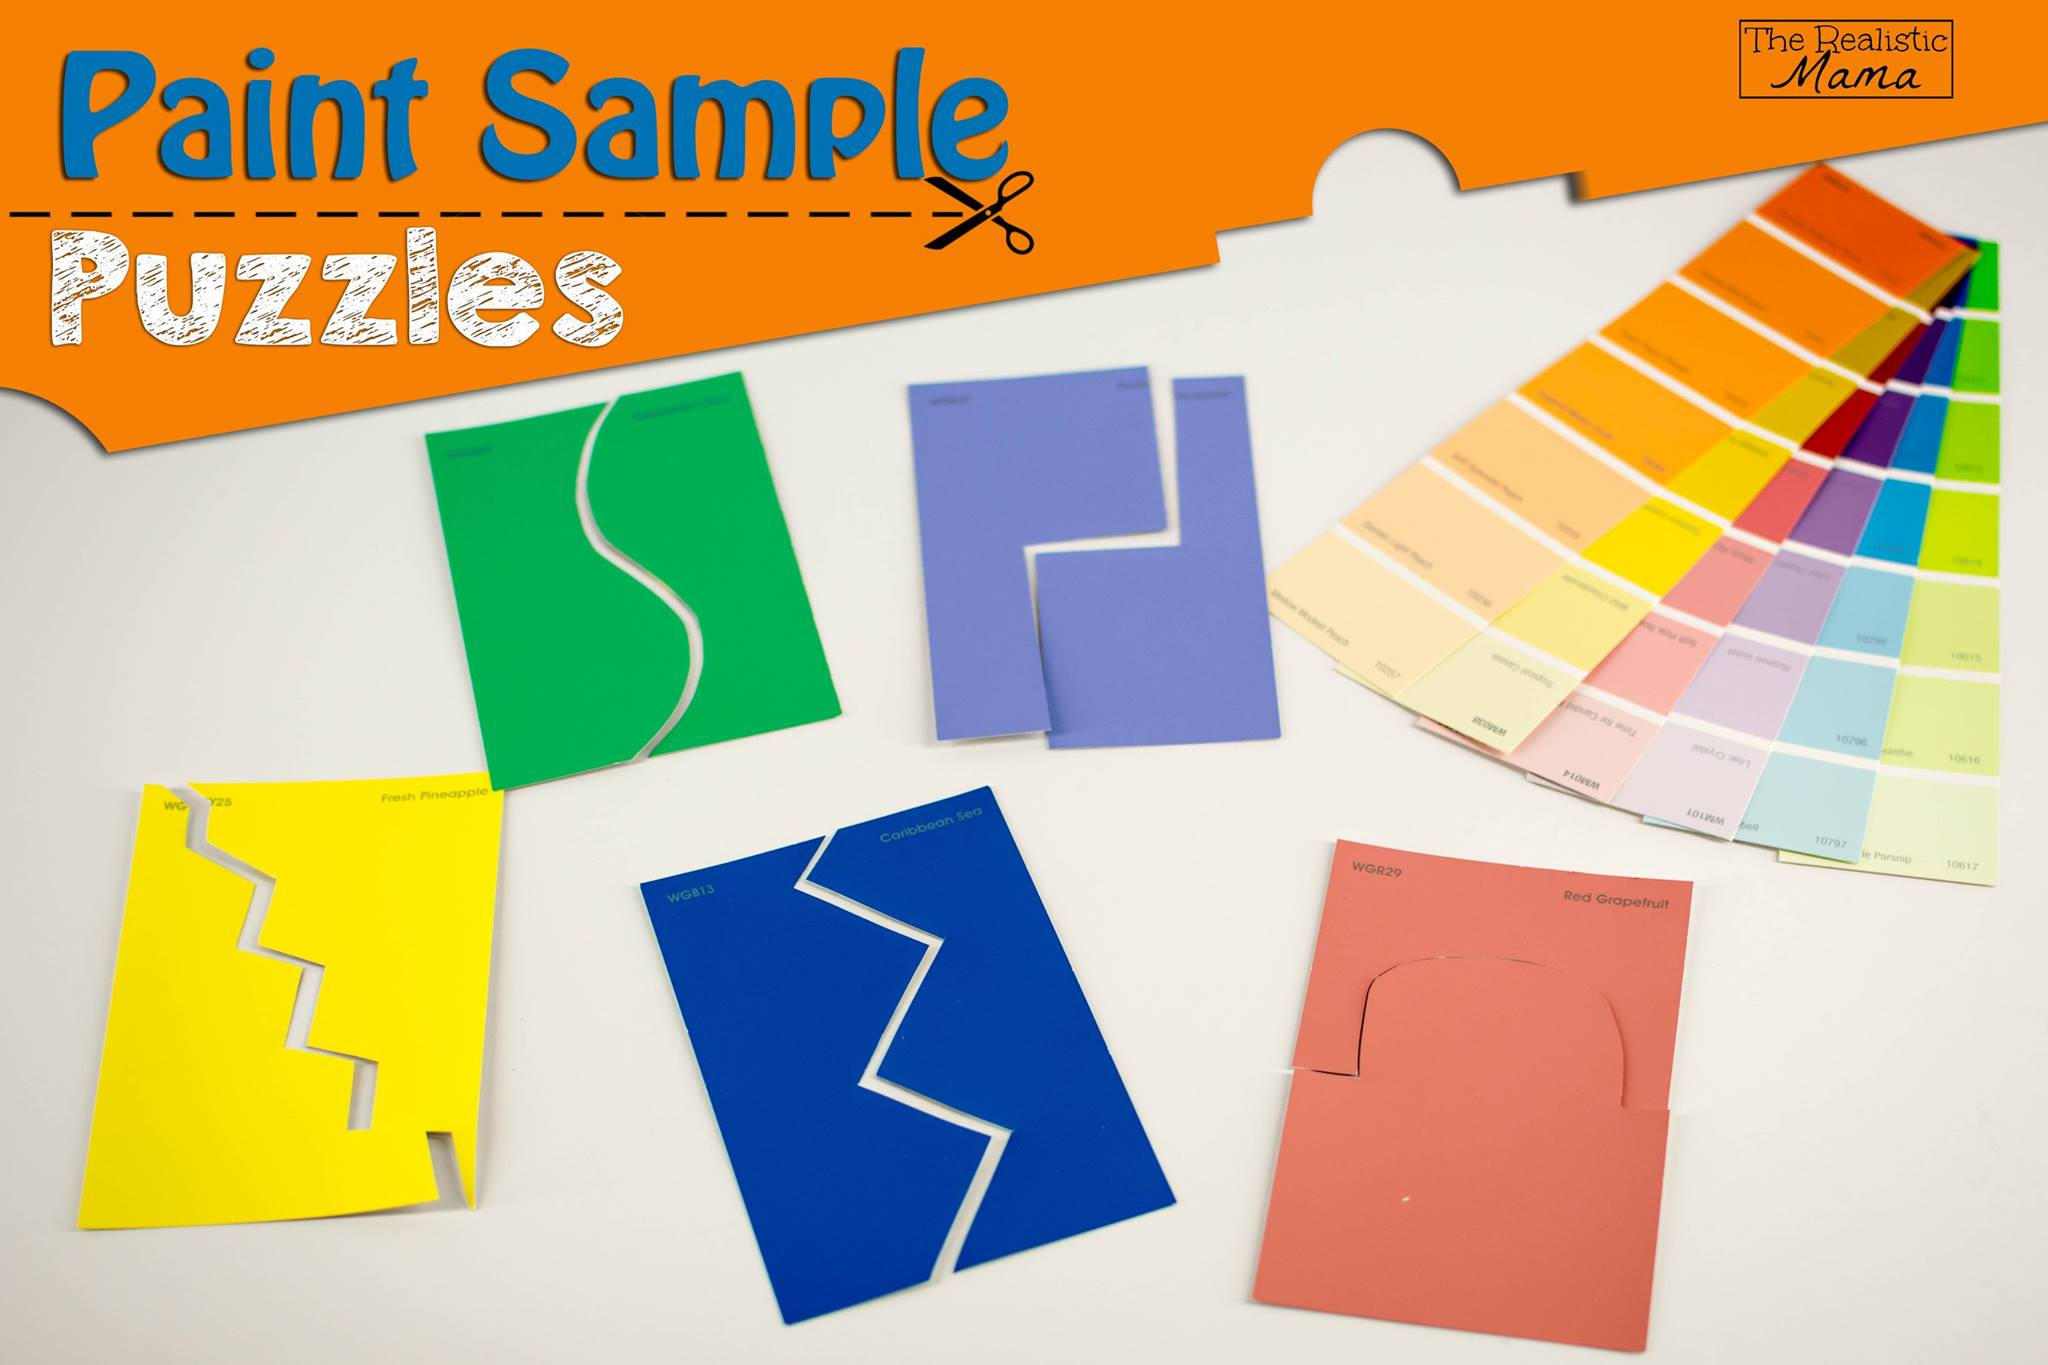 Paint Sample diy free puzzle games with paint samples - the realistic mama